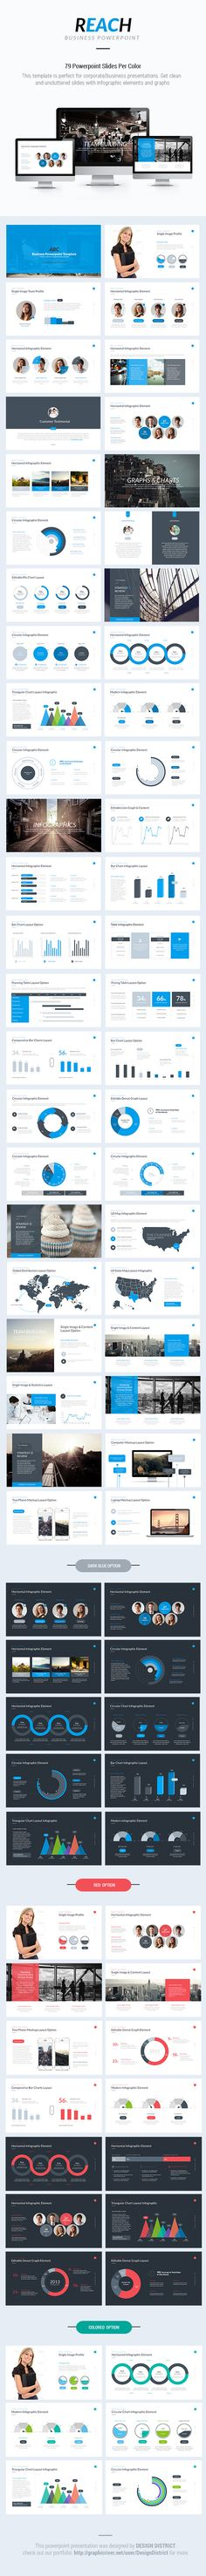 Business Powerpoint Template #powerpoint #powerpointtemplate #presentation Download: http://graphicriver.net/item/business-powerpoint-template/8811677?ref=ksioks